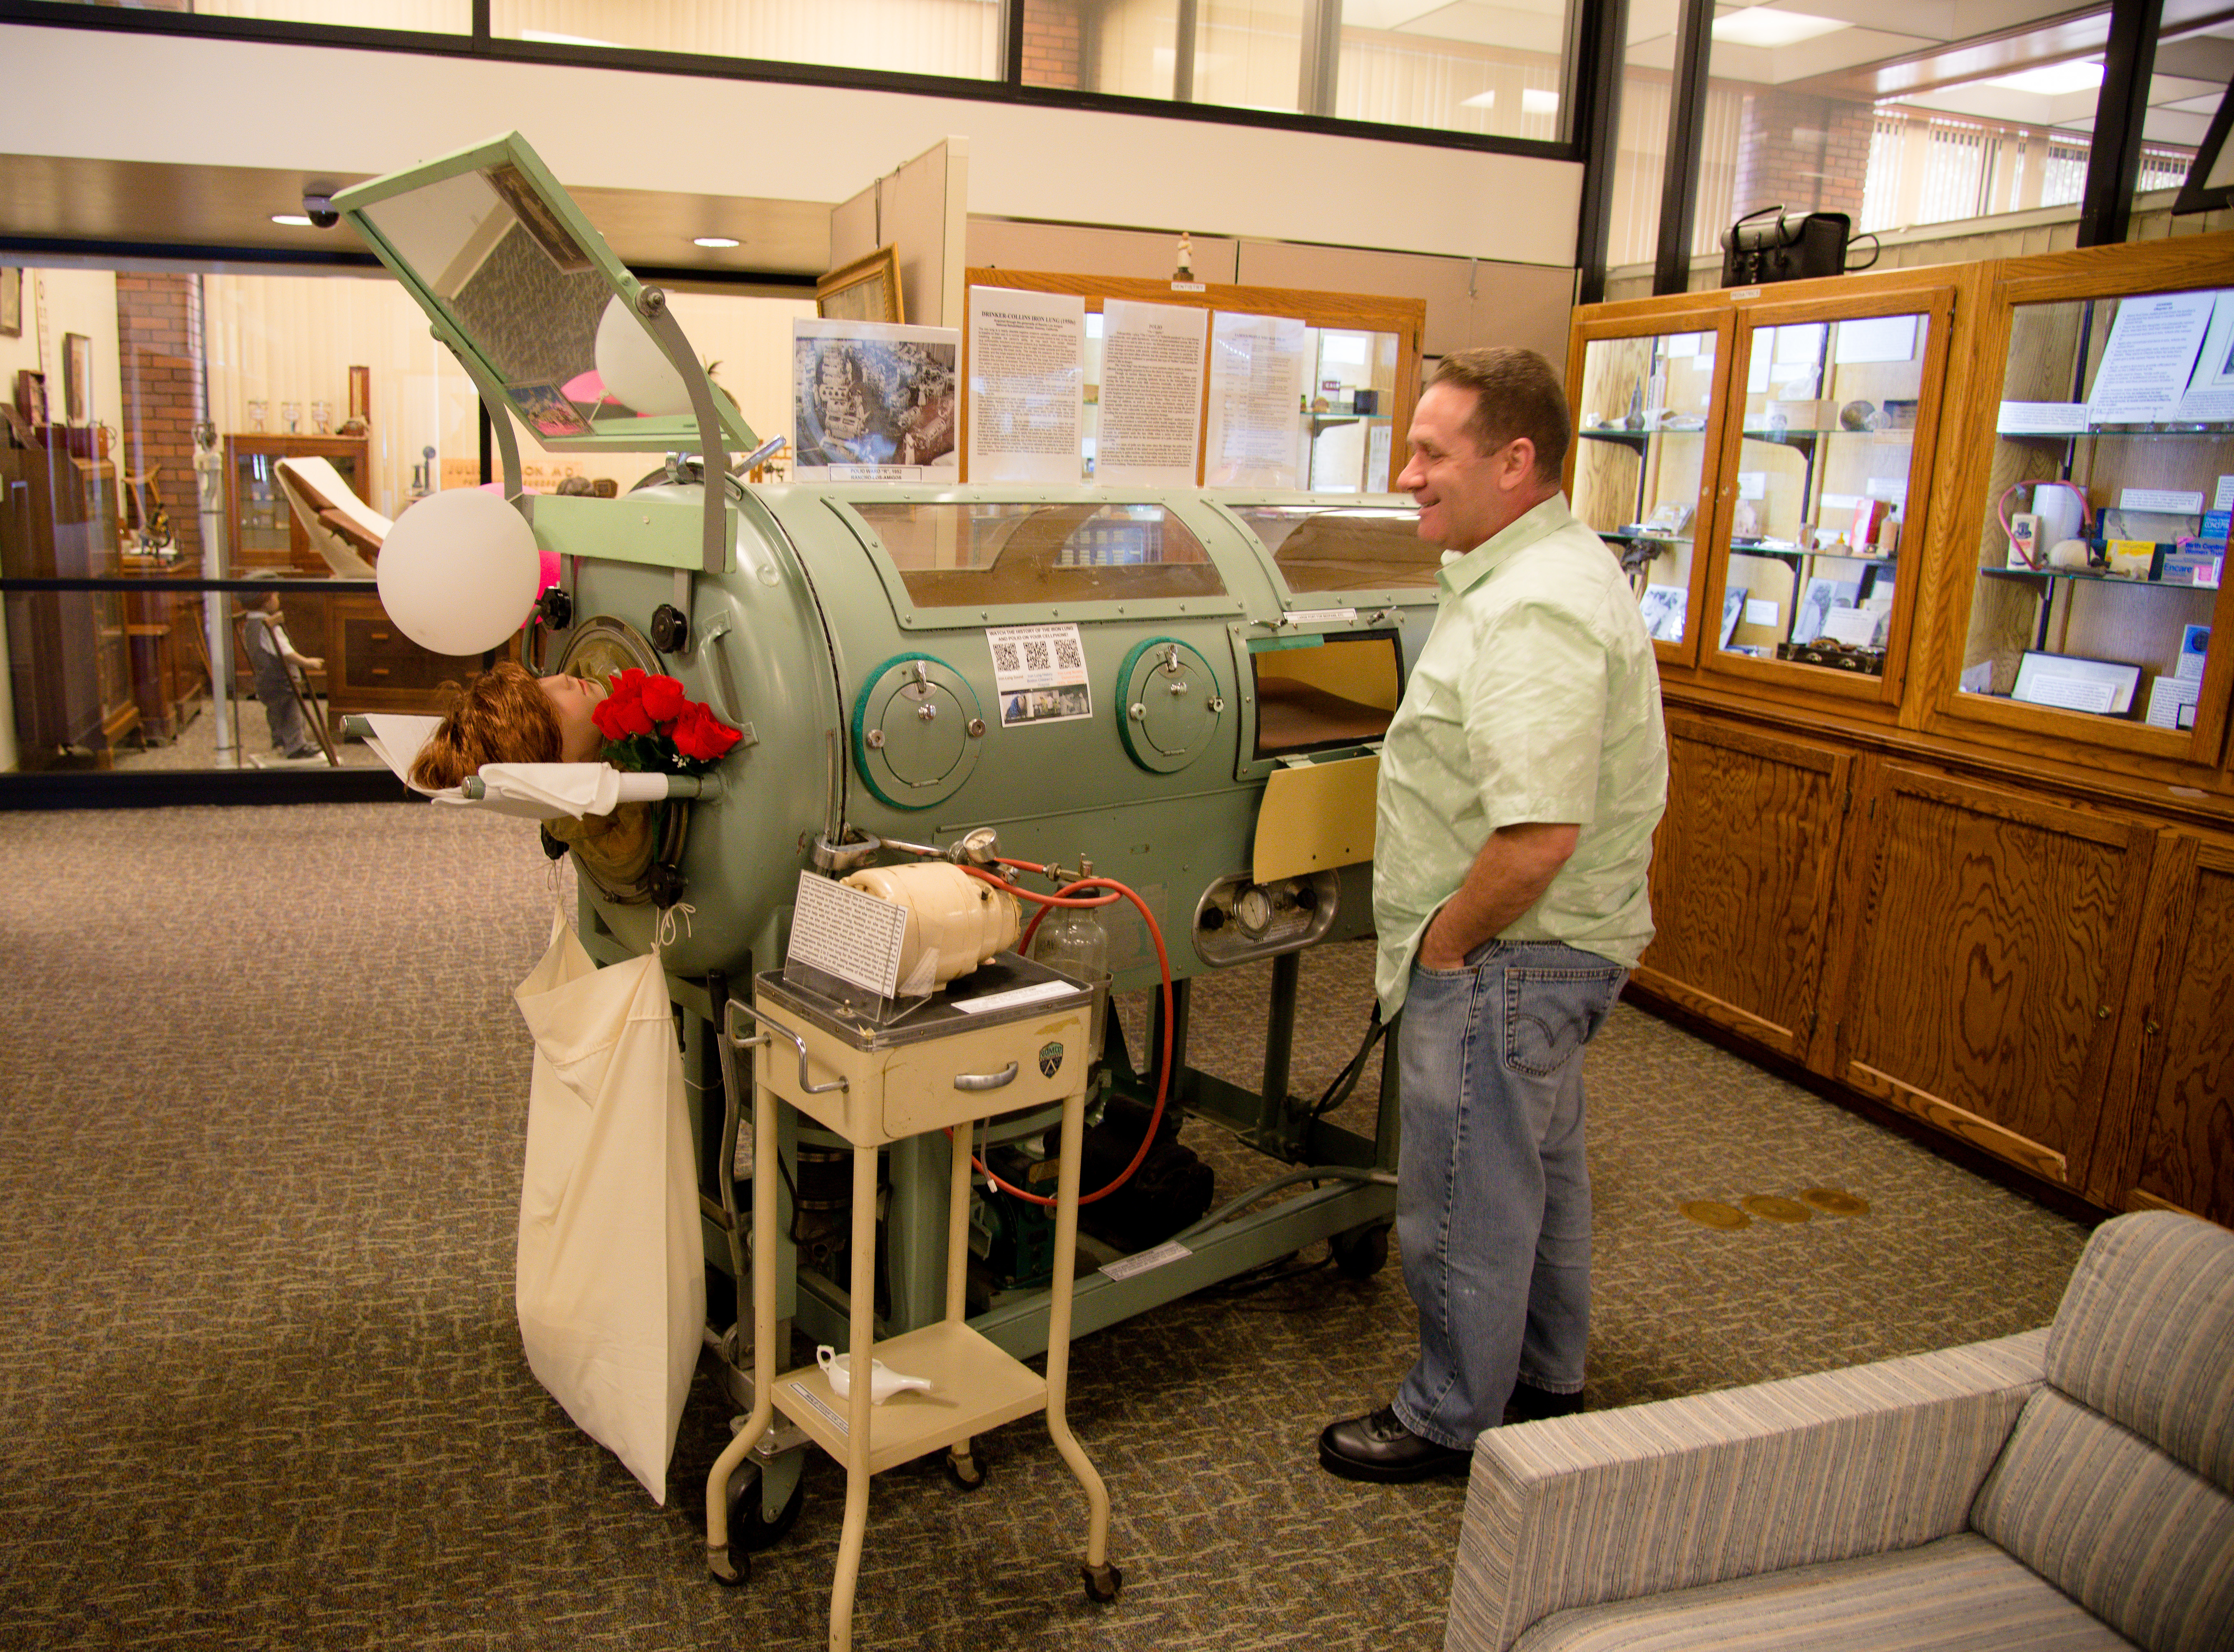 Iron Lung on Display at Southern California Medical Museum